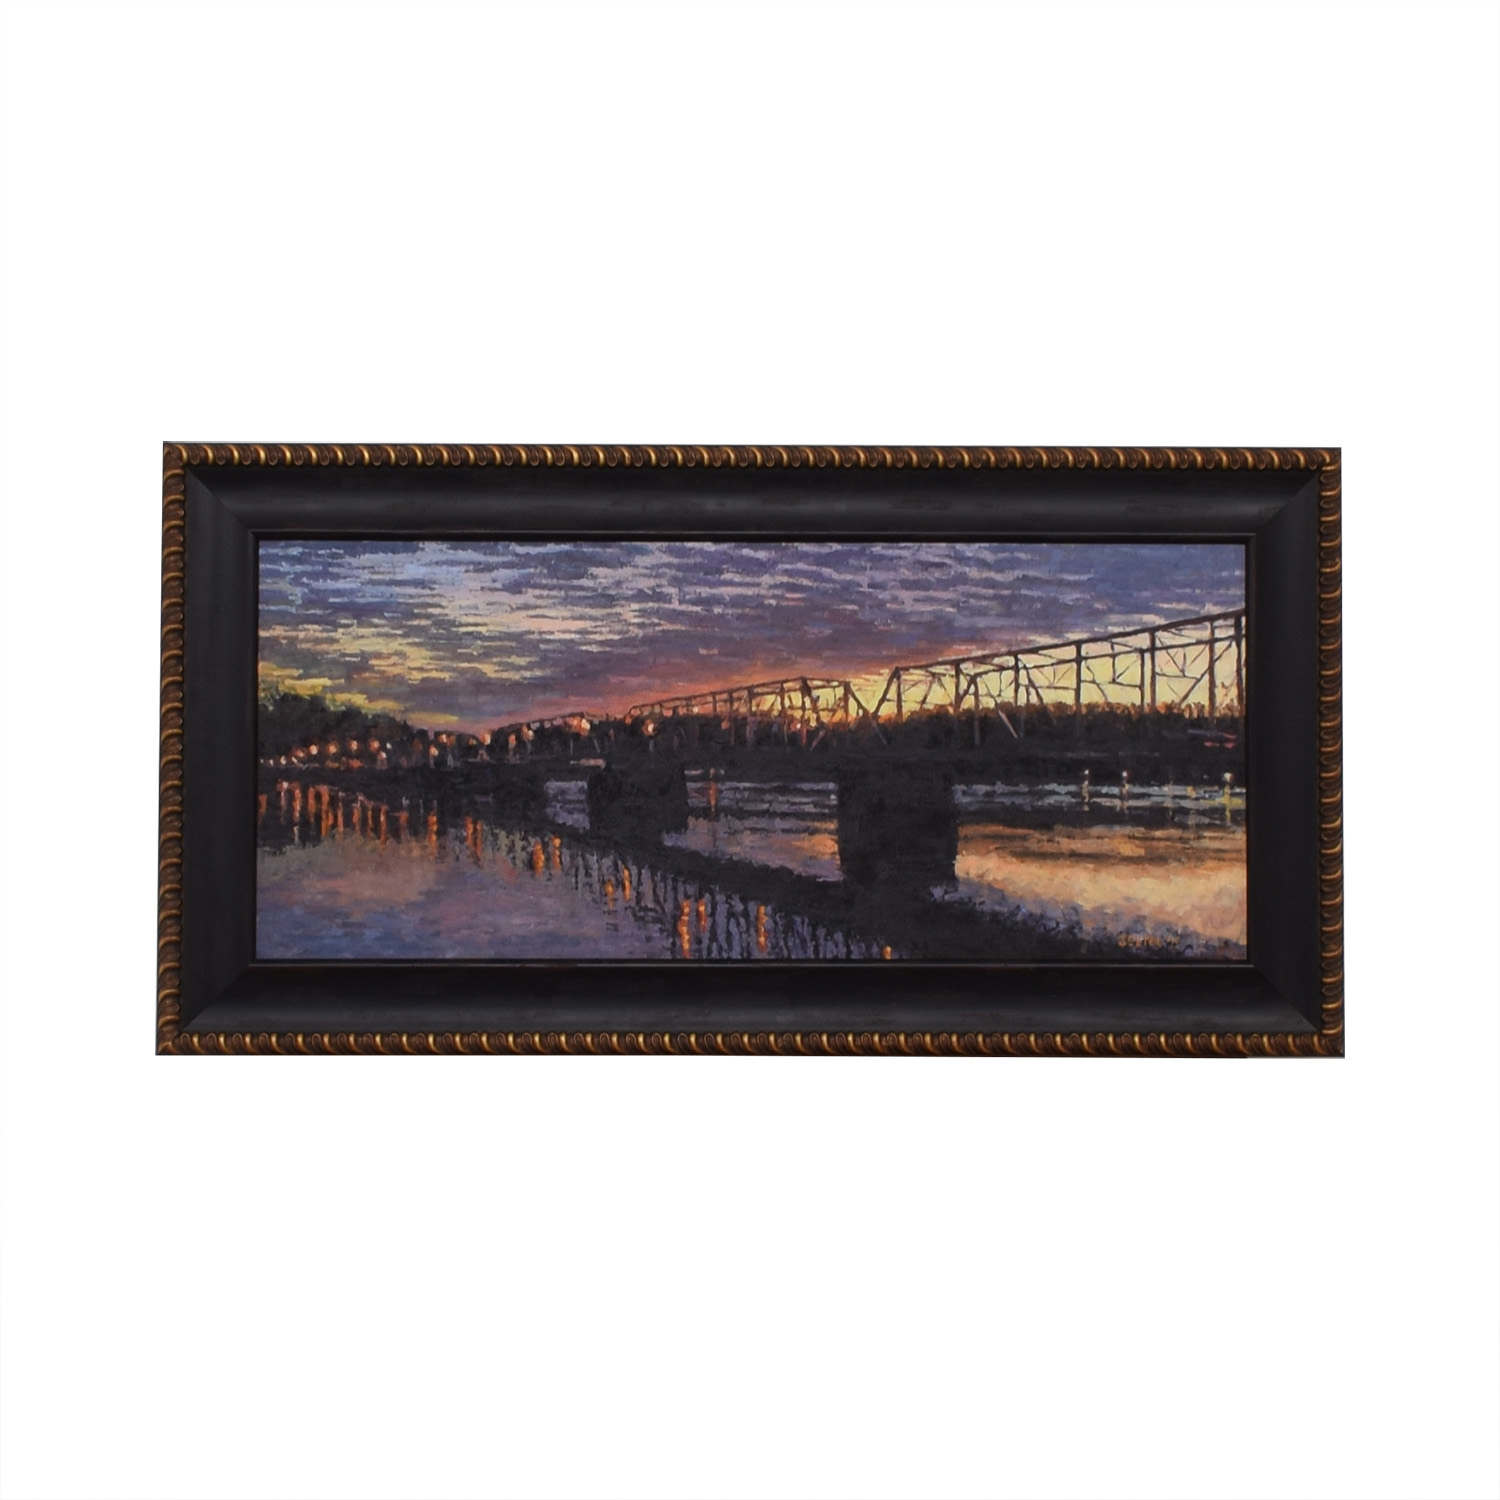 Sexton Signed Original Bridge over River at Sunset Oil Painting discount